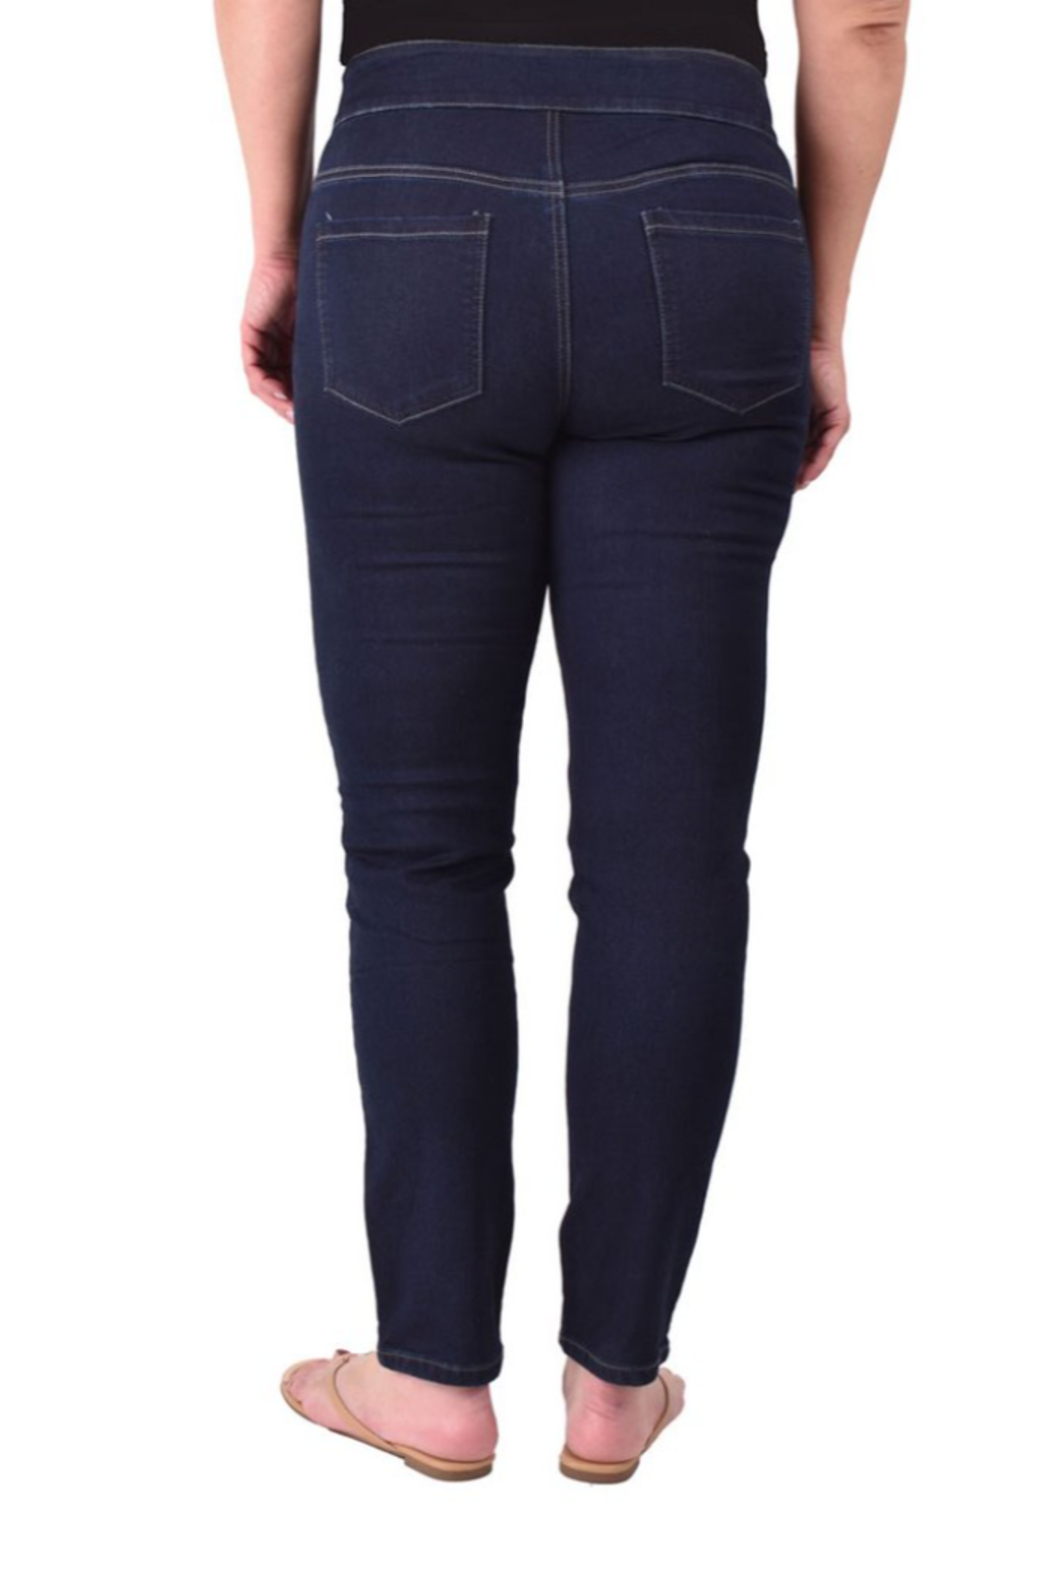 Ethyl  Soft stretch skinny classic jean. All seasons. Pull-on waist. - Front Full Image